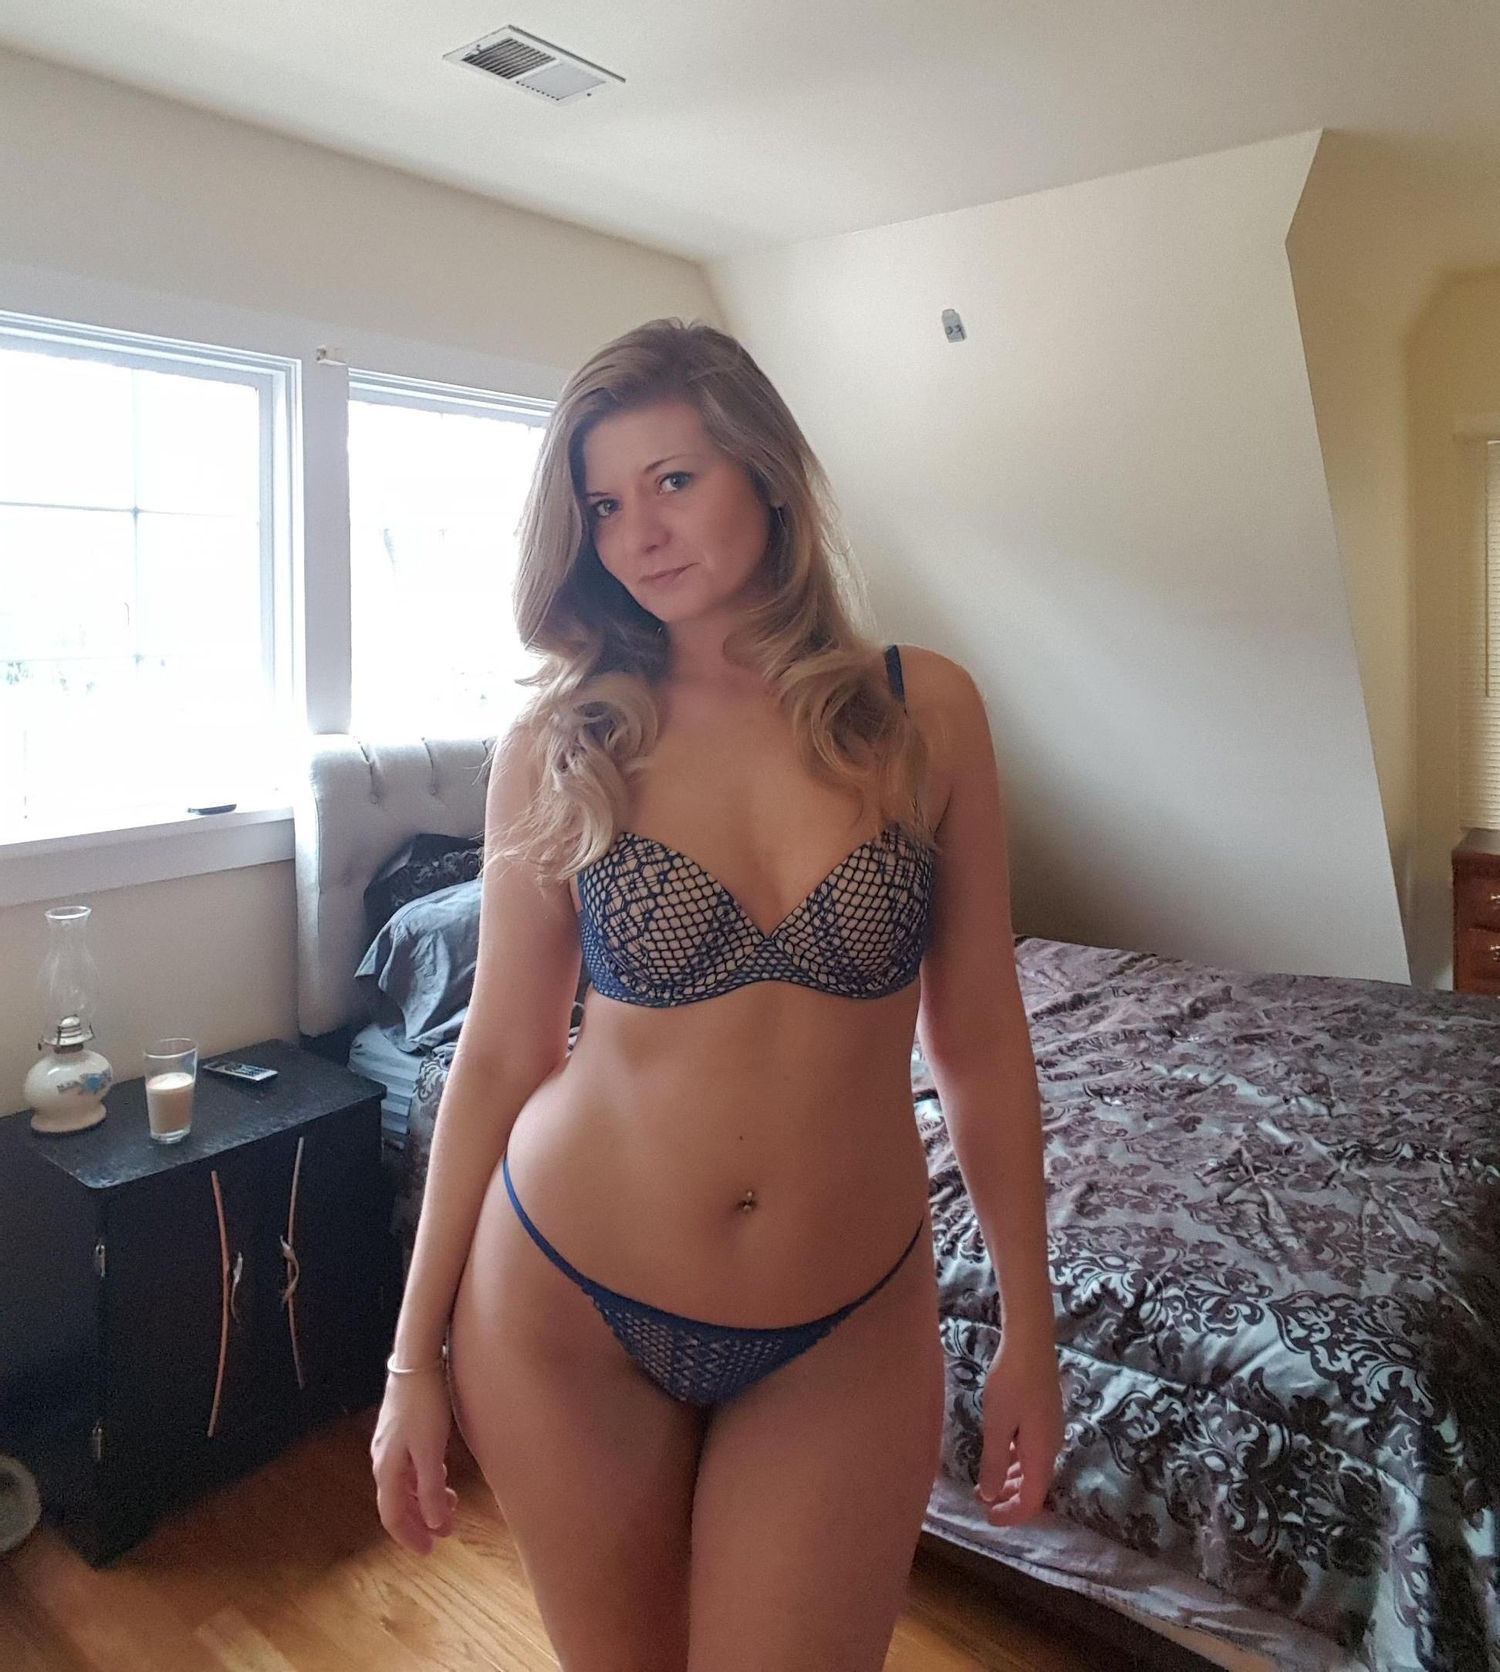 Sexy blonde wife shows her great body in hot lingerie